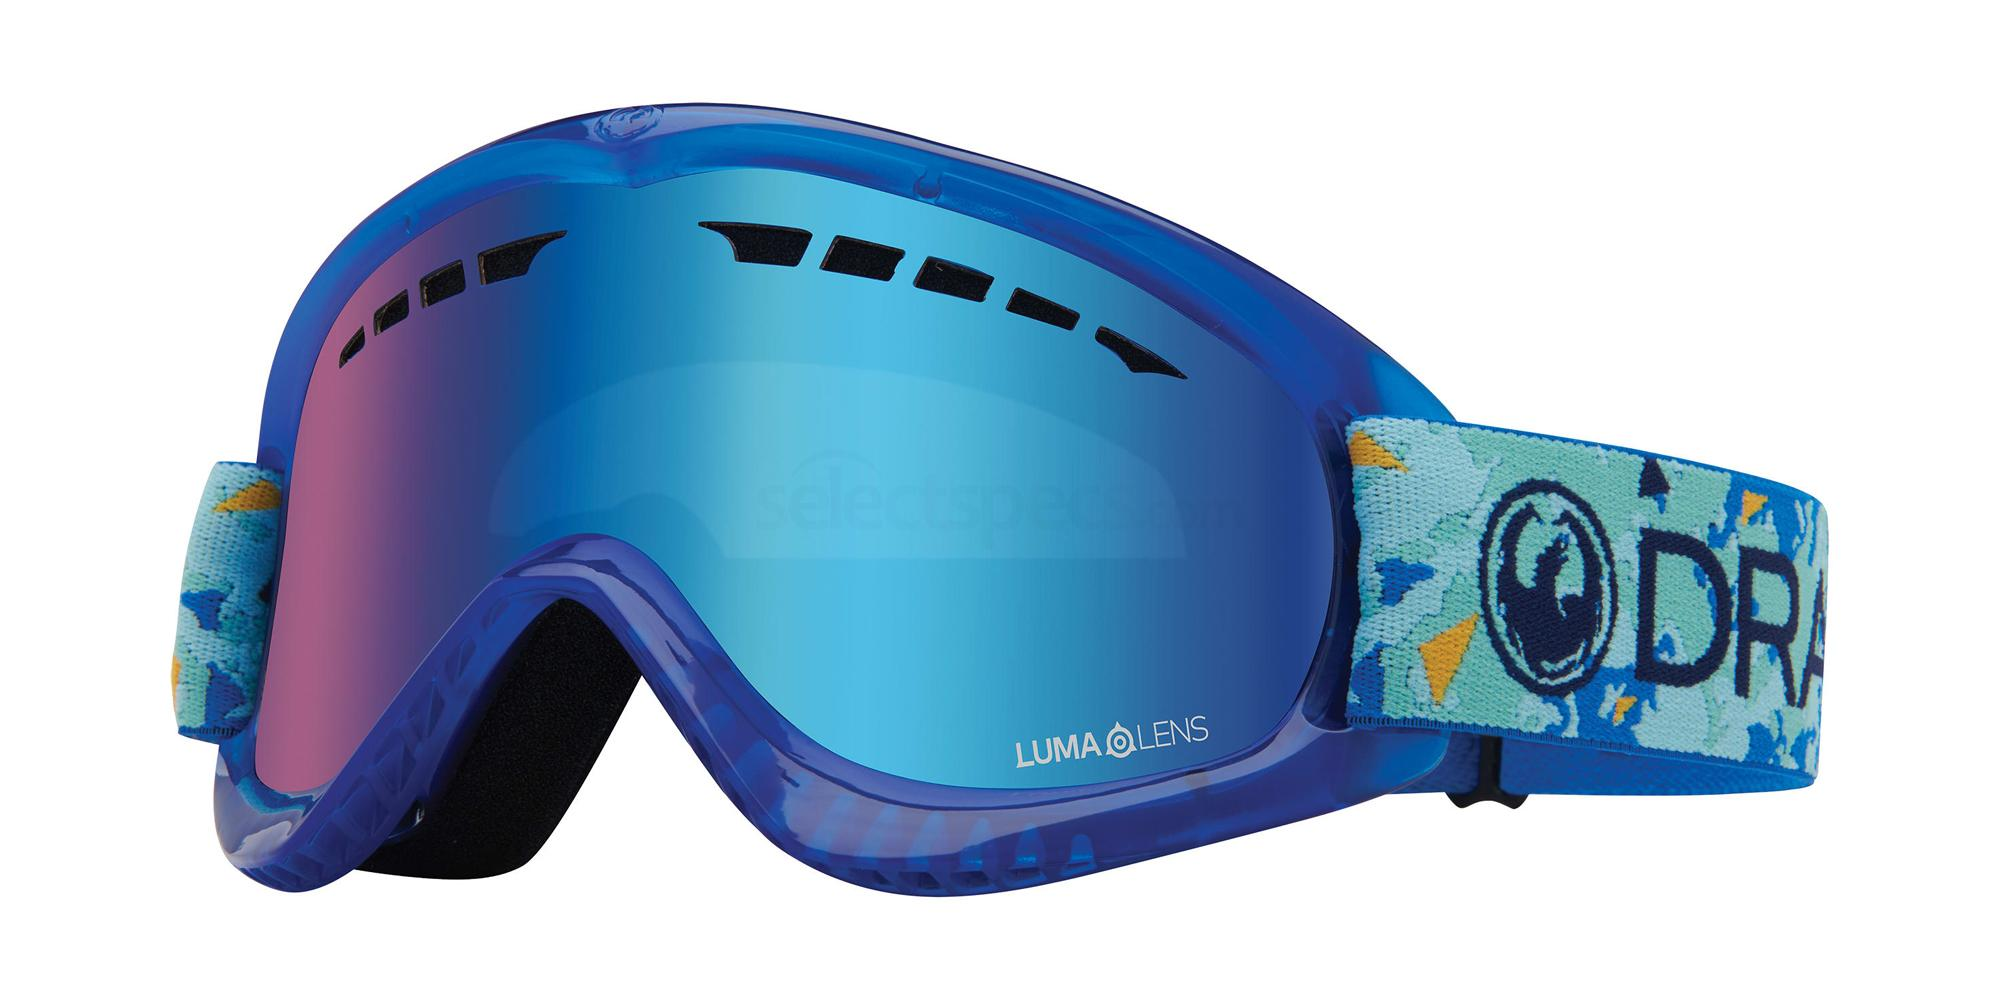 425 DR DX BASE ION Goggles, Dragon